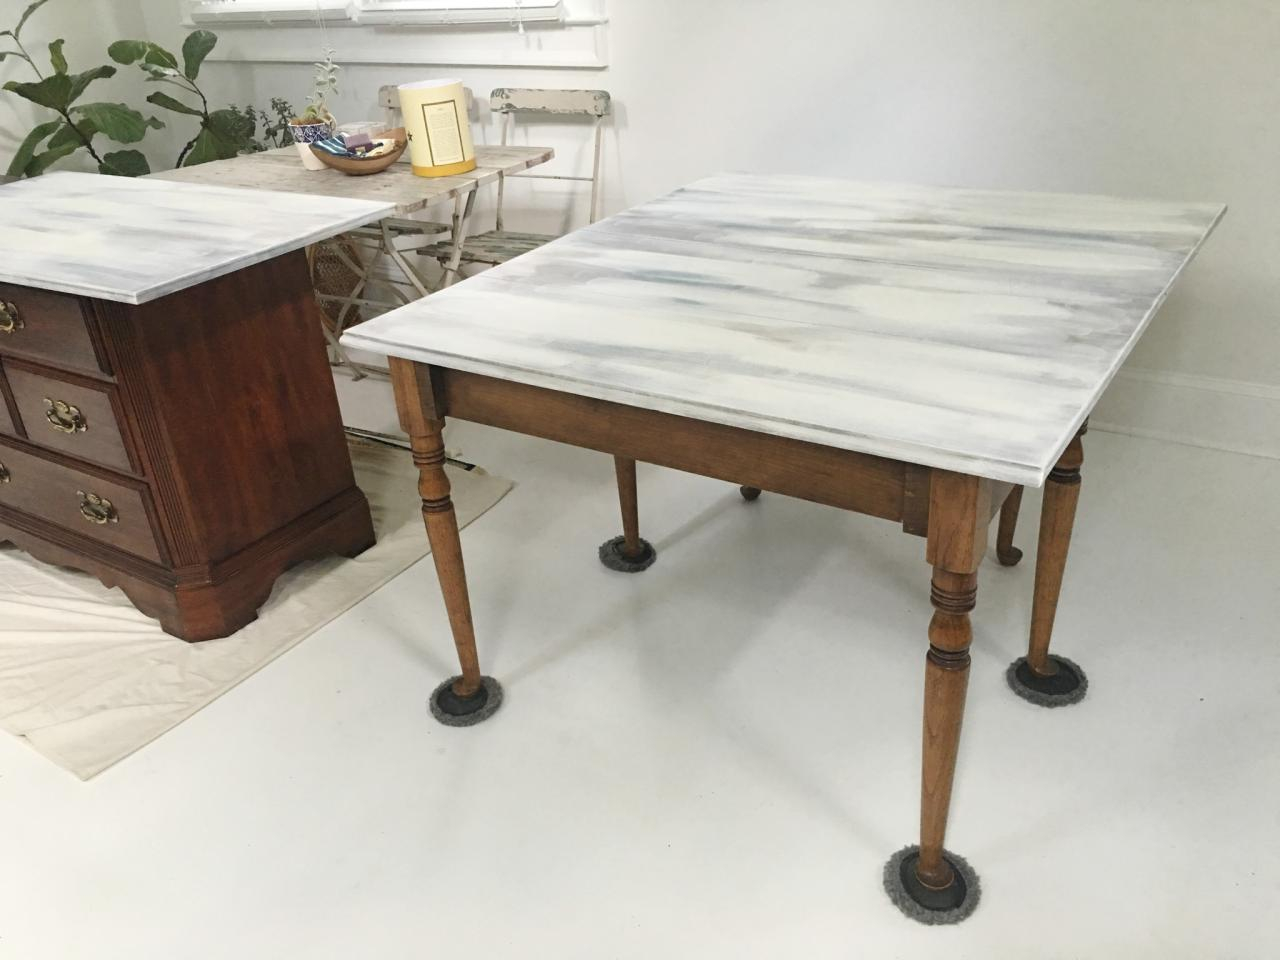 Ways to reuse and redo a dining table diy network blog made get to work with a new desk geotapseo Choice Image